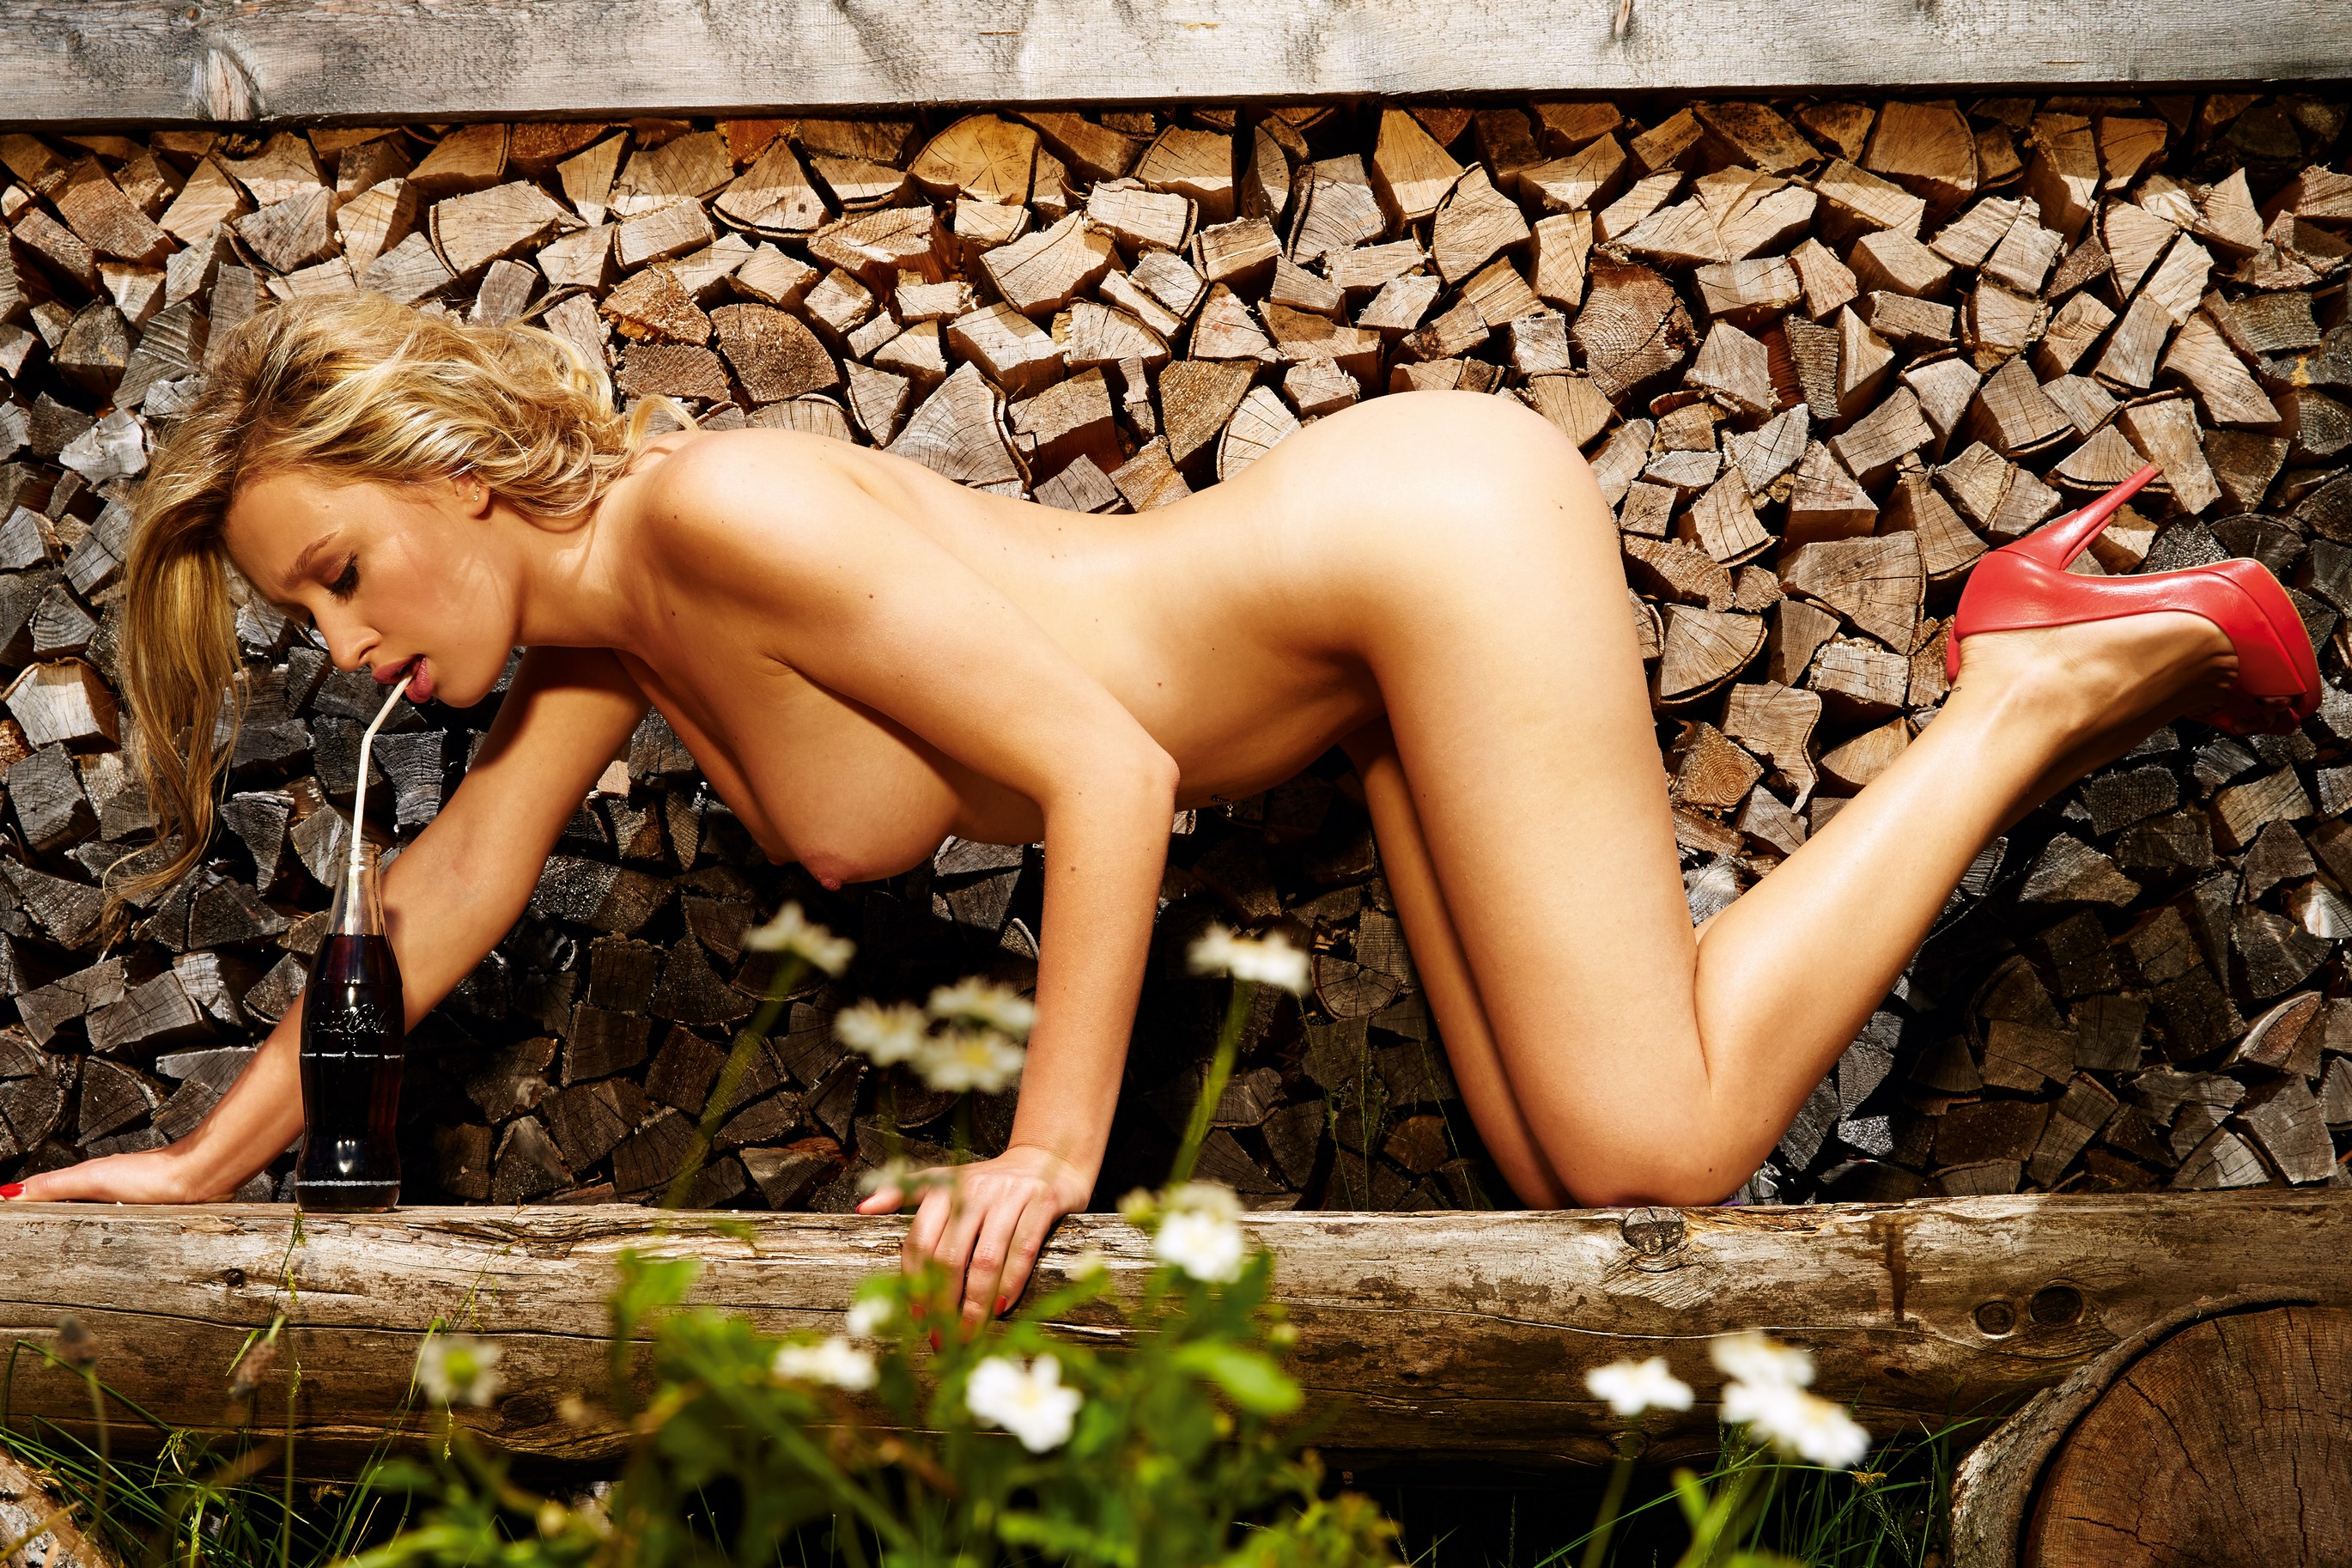 Boy Pics Playboy Plus Is On Set With Kellie Acreman To Shoot Her Exclusive